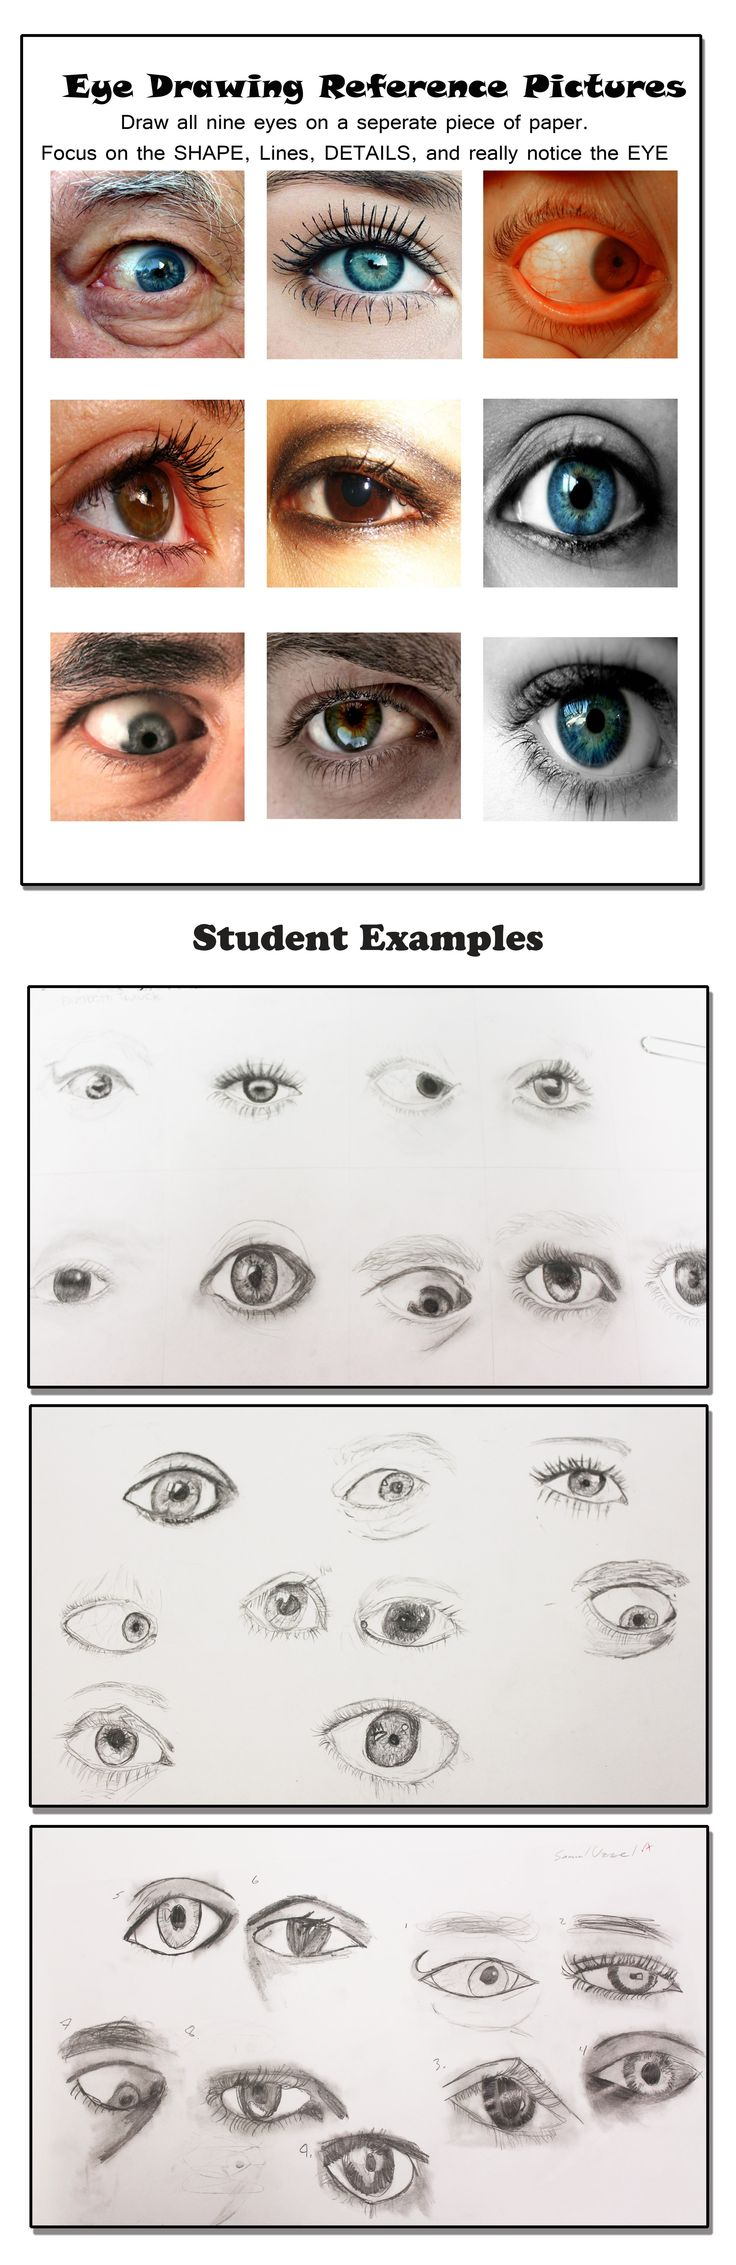 worksheet Eyes On The Prize Worksheet 276 best teaching worksheets images on pinterest art education 1 eye drawings learning to draw the worksheet myrtle beach high school